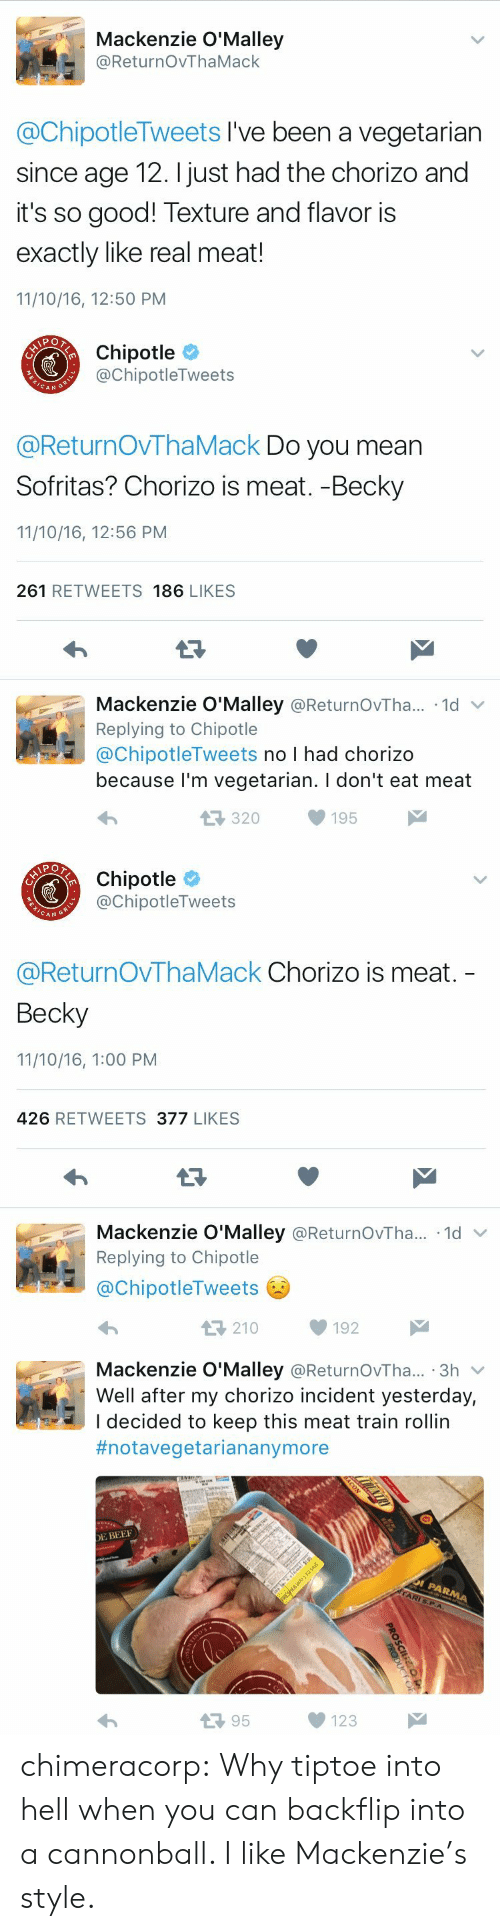 Eat Meat: Mackenzie O'Malley  @ReturnOvThaMack  @ChipotleTweets I've been a vegetarian  since age 12. I just had the chorizo and  it's so good! Texture and flavor is  exactly like real meat!  11/10/16, 12:50 PM   Chipotle  @ChipotleTweets  CAN  @ReturnOVThaMack Do you mean  Sofritas? Chorizo is meat. -Becky  11/10/16, 12:56 PM  261 RETWEETS 186 LIKES  Mackenzie O'Malley @ReturnOvTha.. 1d  Replying to Chipotle  @ChipotleTweets no I had chorizo  because l'm vegetarian. I don't eat meat  320195   Chipotle  @ChipotleTweets  CAN G  @ReturnOvThaMack Chorizo is meat.  Becky  11/10/16, 1:00 PM  426 RETWEETS 377 LIKES  Mackenzie O'Malley @ReturnOvTha...-1d ﹀  Replying to Chipotle  @ChipotleTweets  わ  210192   Mackenzie O'Malley @ReturnOvTha... 3h v  Well after my chorizo incident yesterday,  I decided to keep this meat train rollin  #notavegetariananymore  E BEE  13 95  123 chimeracorp: Why tiptoe into hell when you can backflip into a cannonball. I like Mackenzie's style.